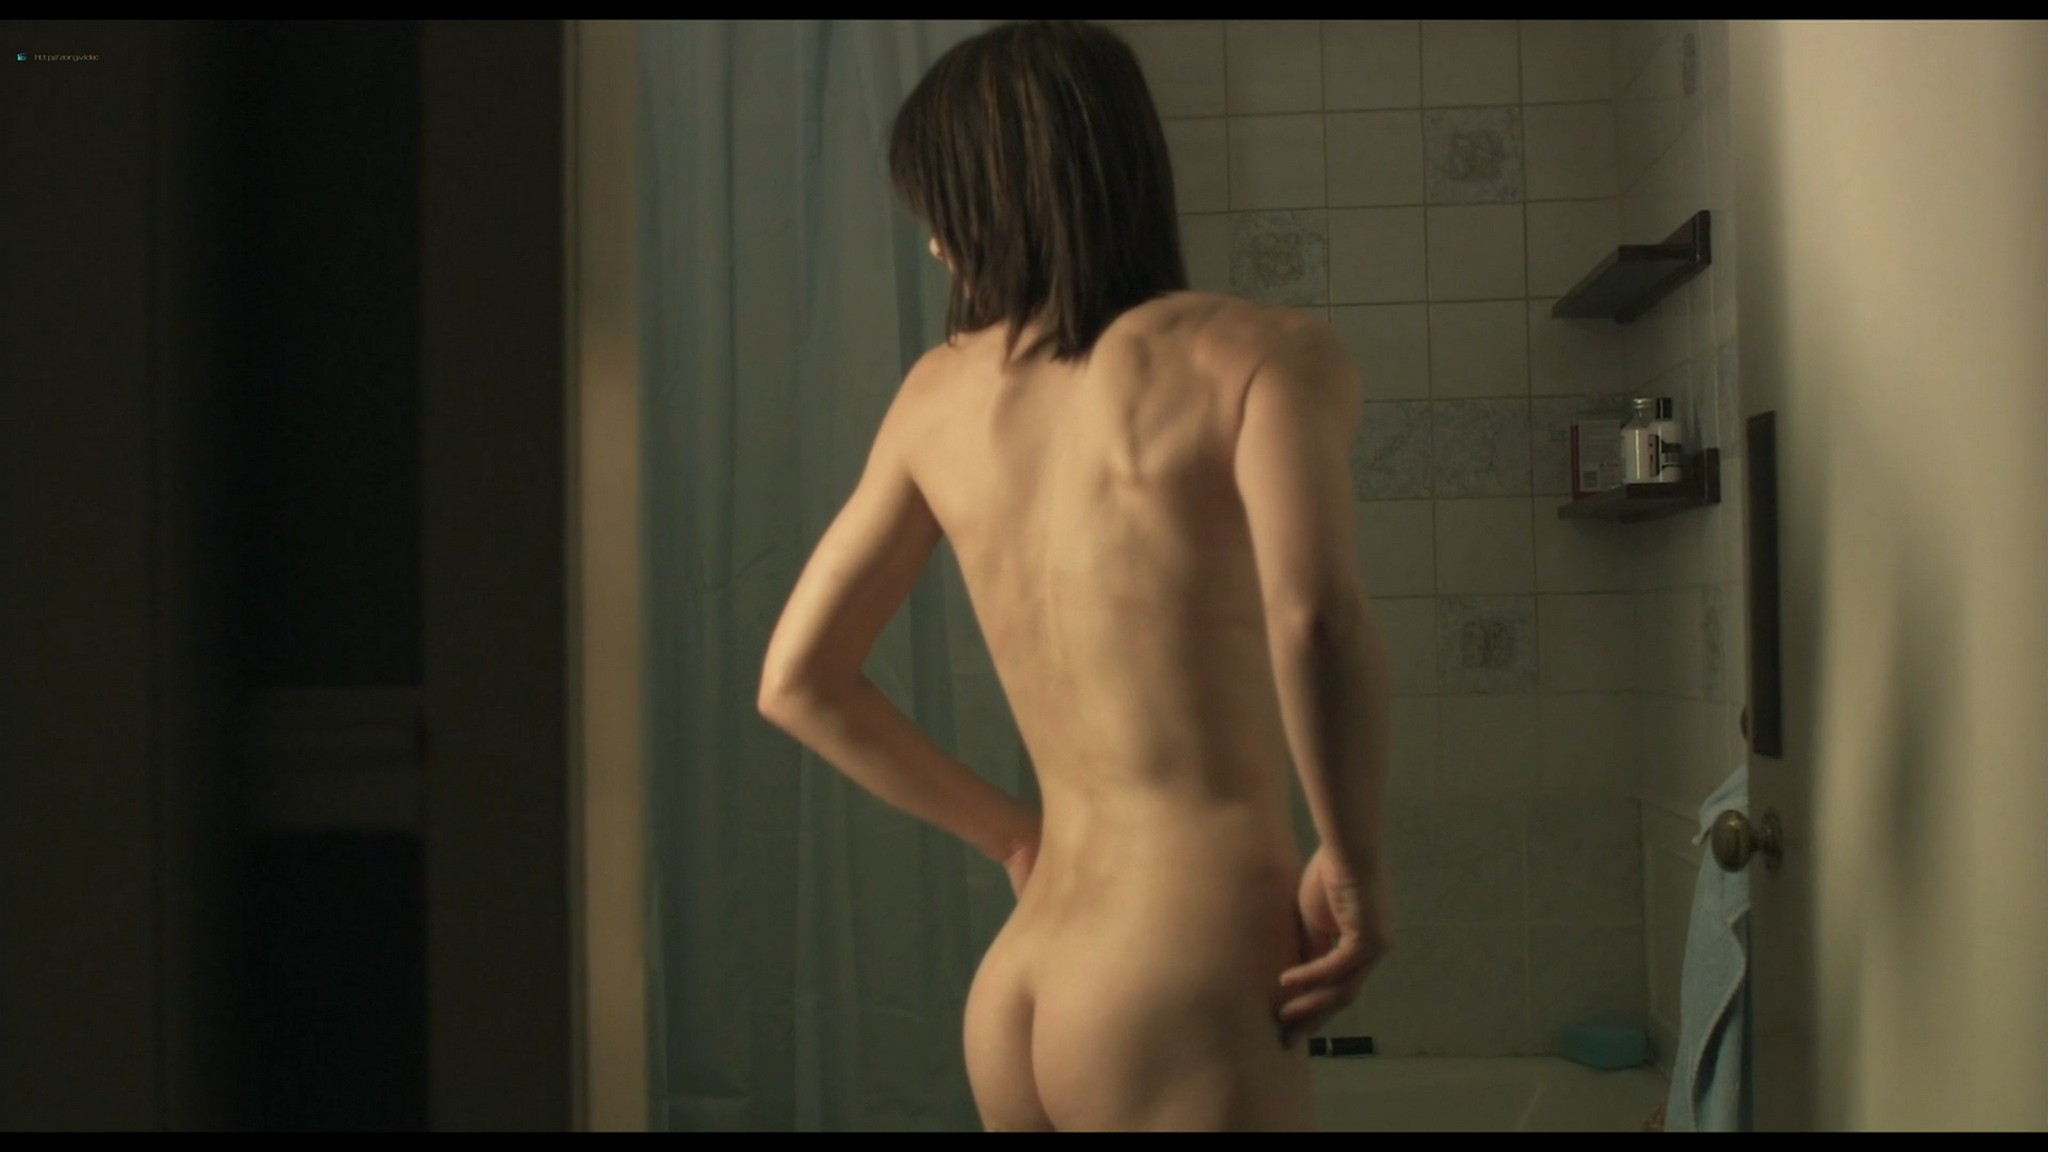 Kate Dickie nude sex receiving oral- Red Road (2006) HD 1080p BluRay (13)